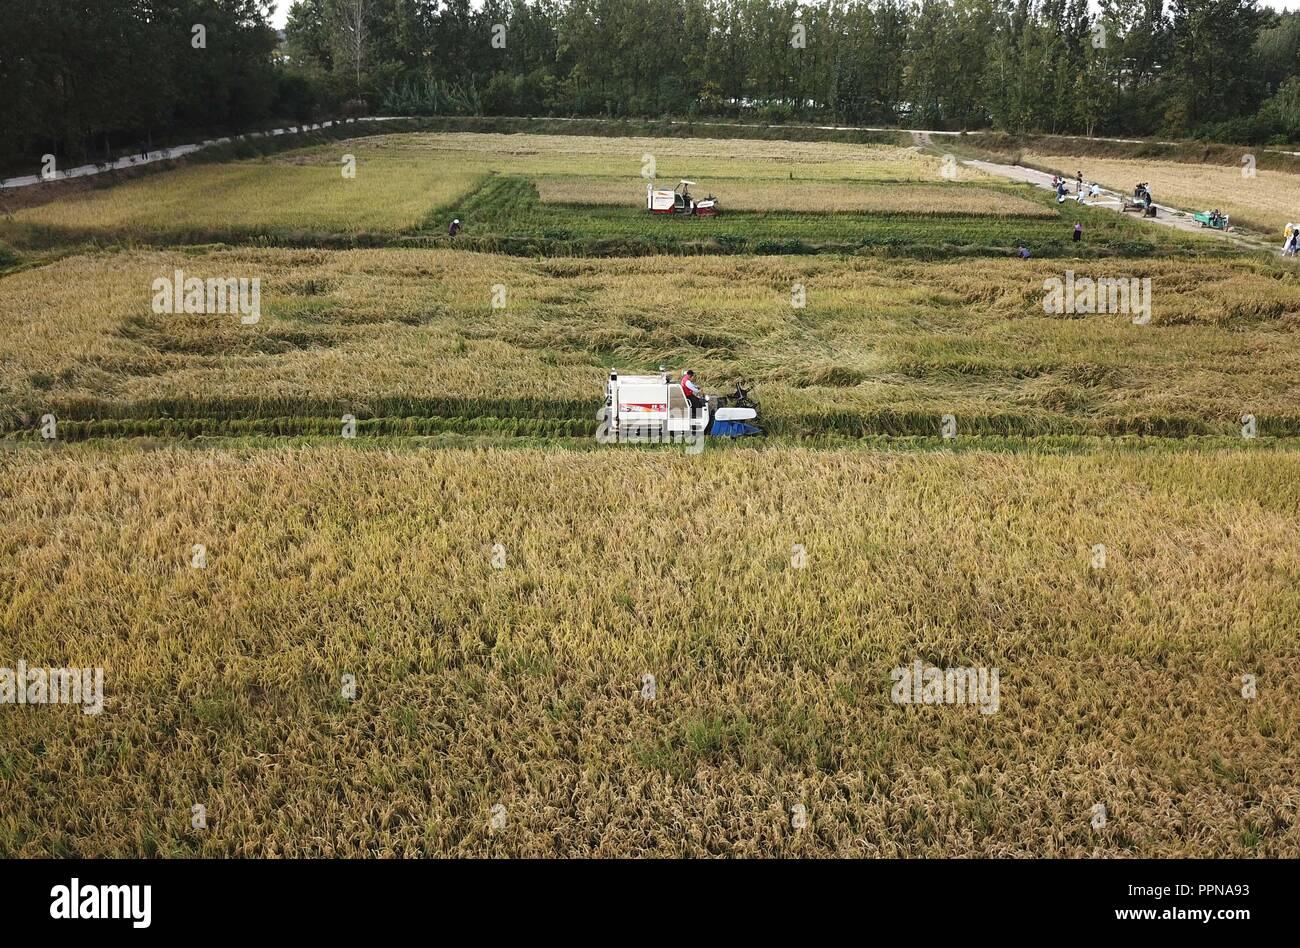 Fengyang, China's Anhui Province. 27th Sep, 2018. Farmers operate reapers to harvest rice at Xiaogang Village in Fengyang County, east China's Anhui Province, Sept. 27, 2018. Credit: Liu Junxi/Xinhua/Alamy Live News - Stock Image